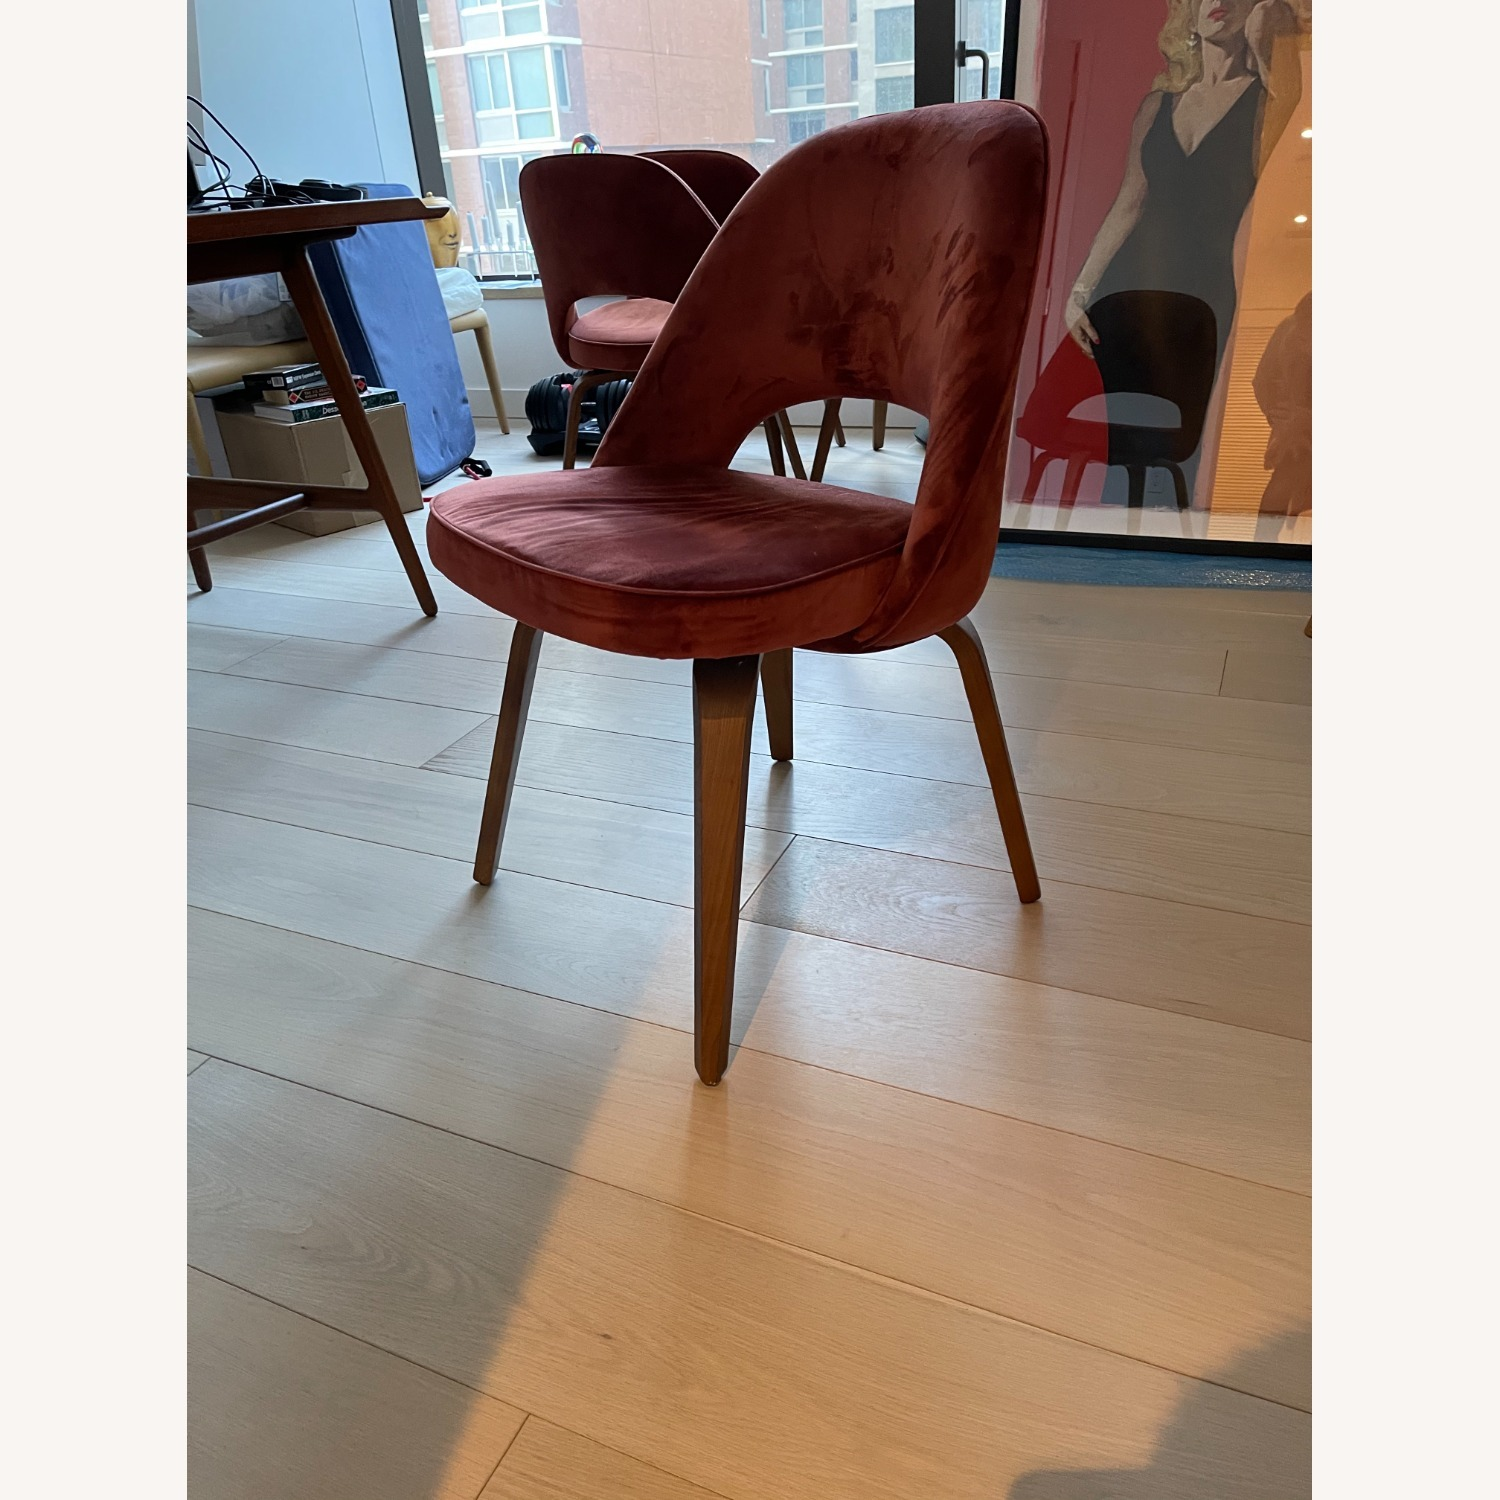 Knoll Reproduction Dining Chairs - image-1